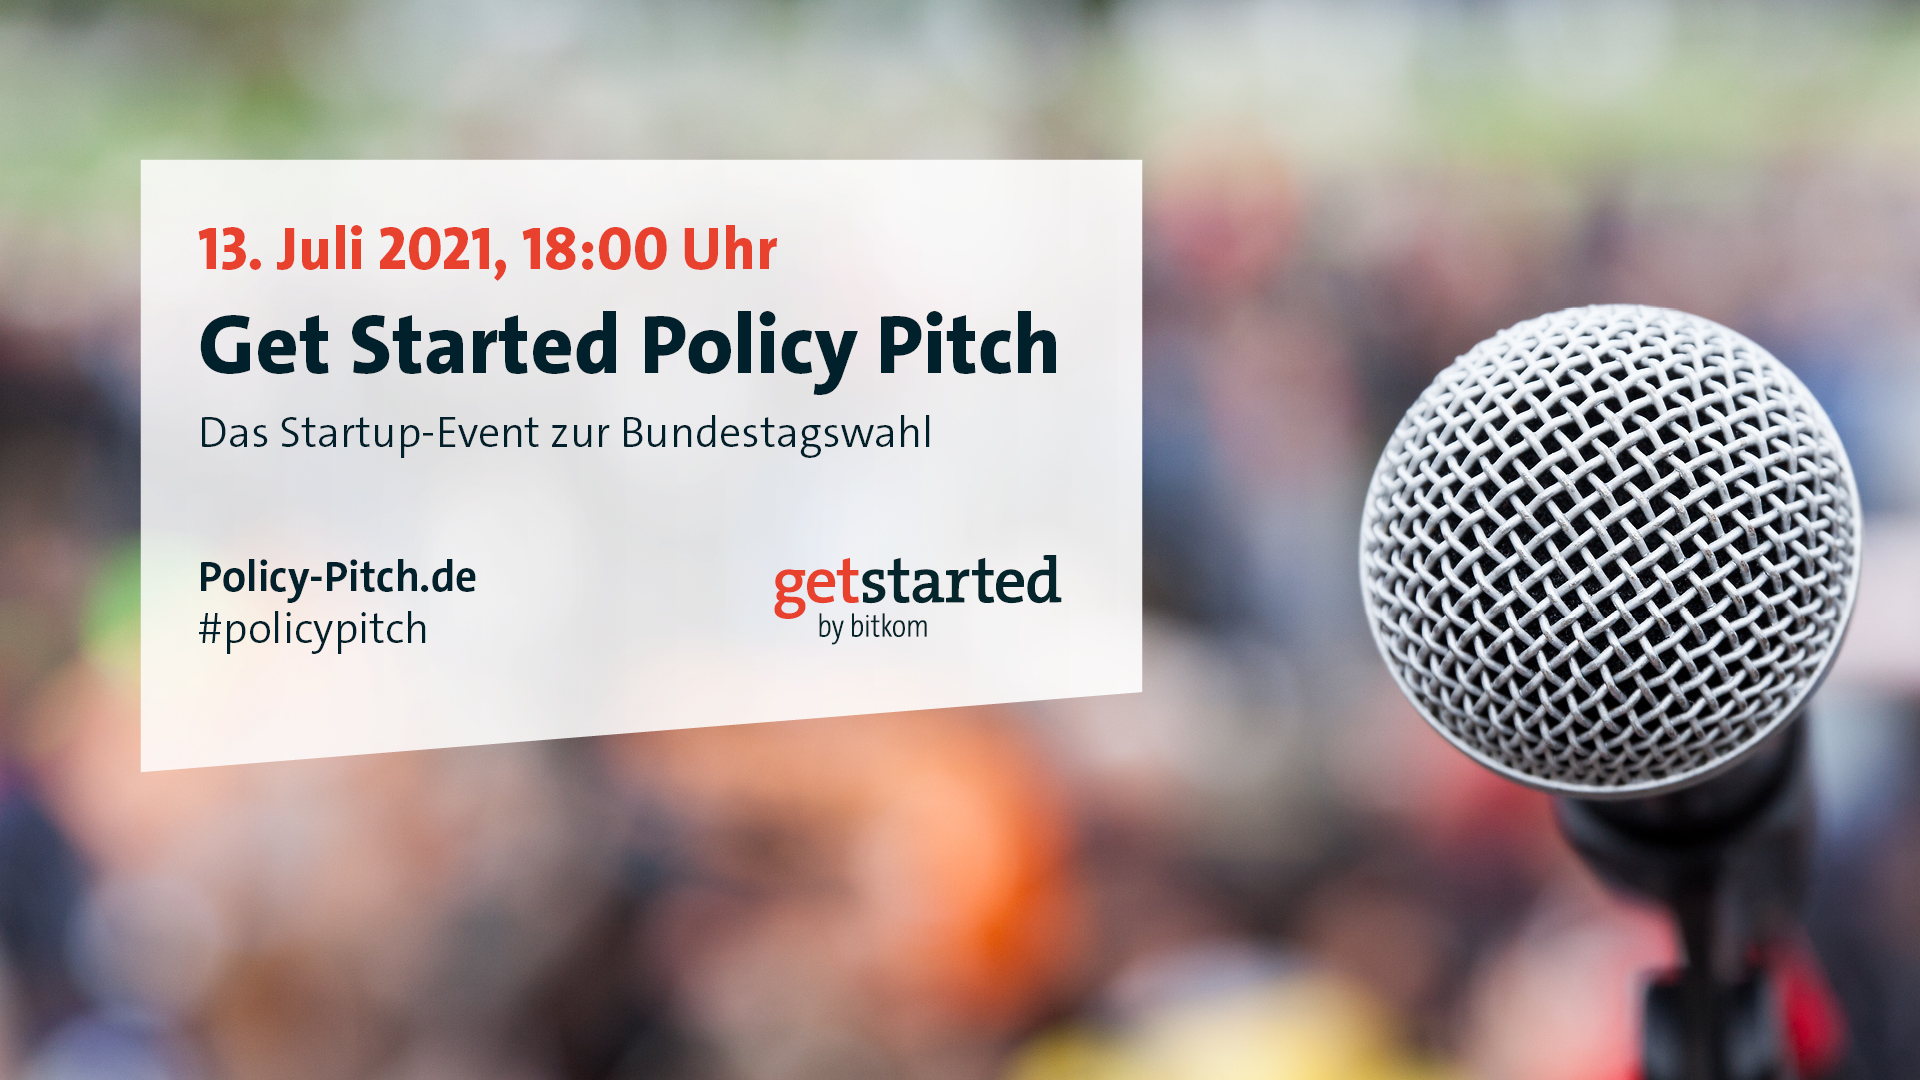 Get Started Policy Pitch